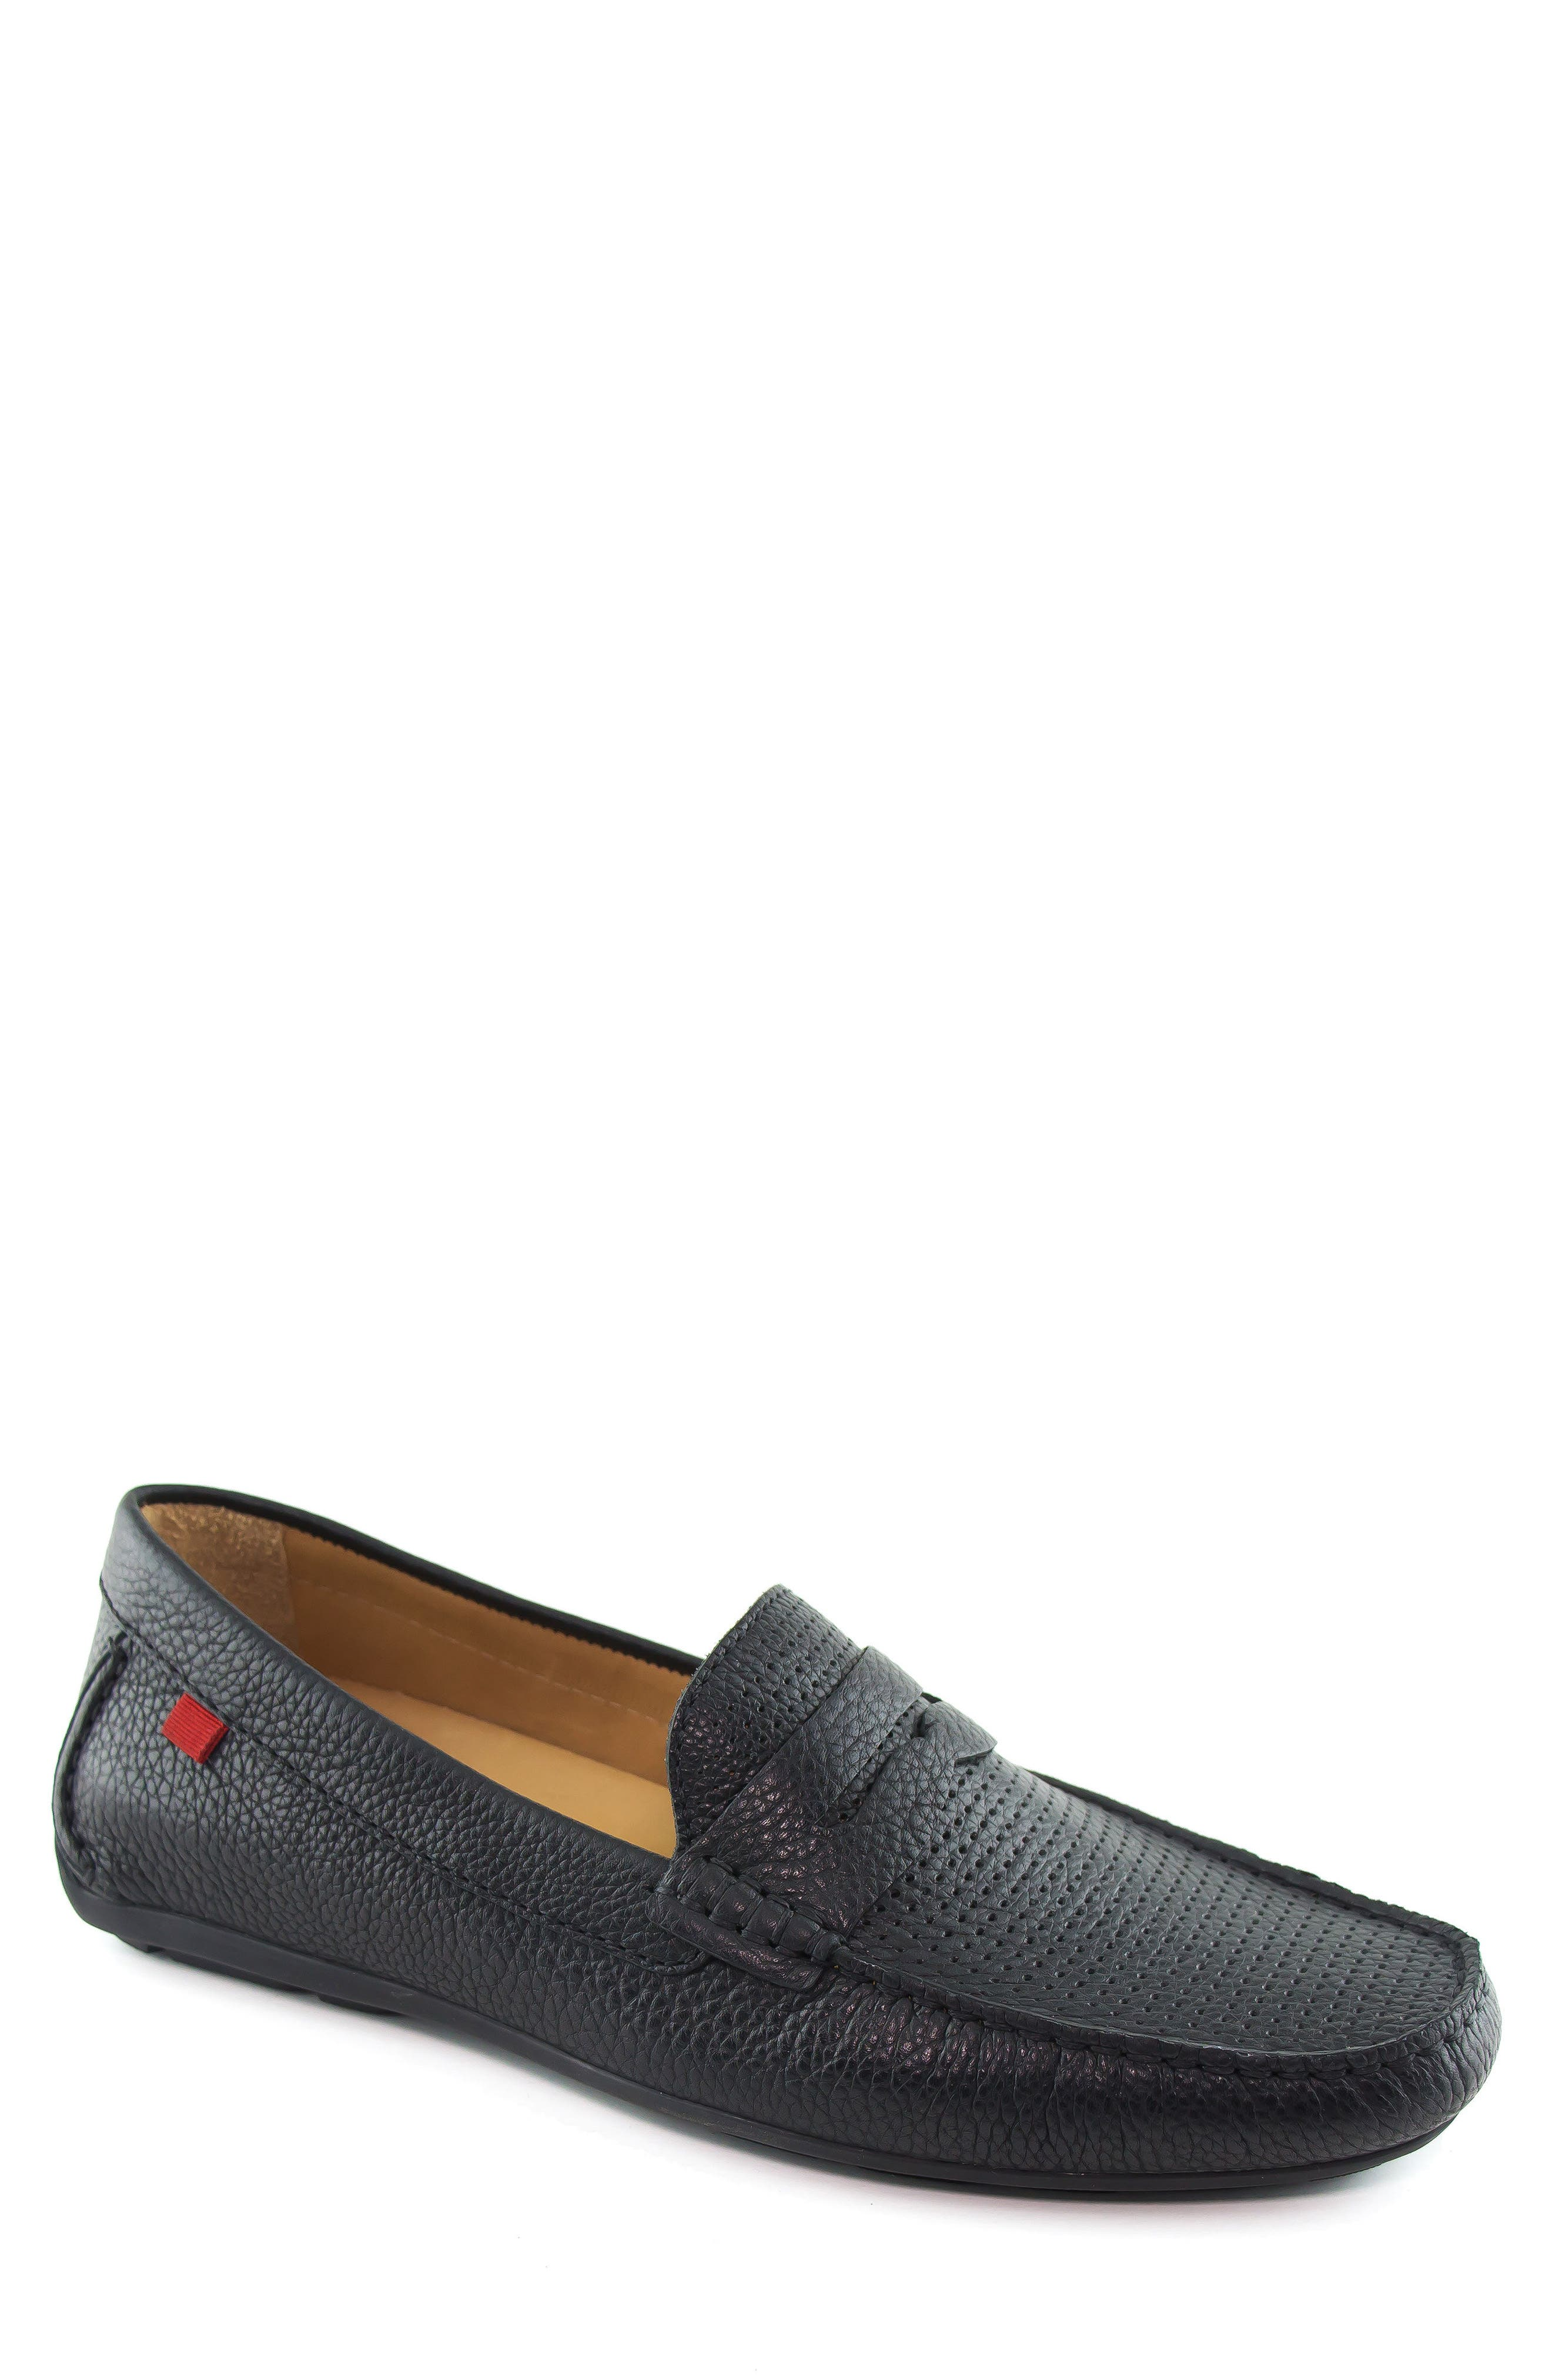 MARC JOSEPH NEW YORK, Union Street Driving Shoe, Main thumbnail 1, color, BLACK